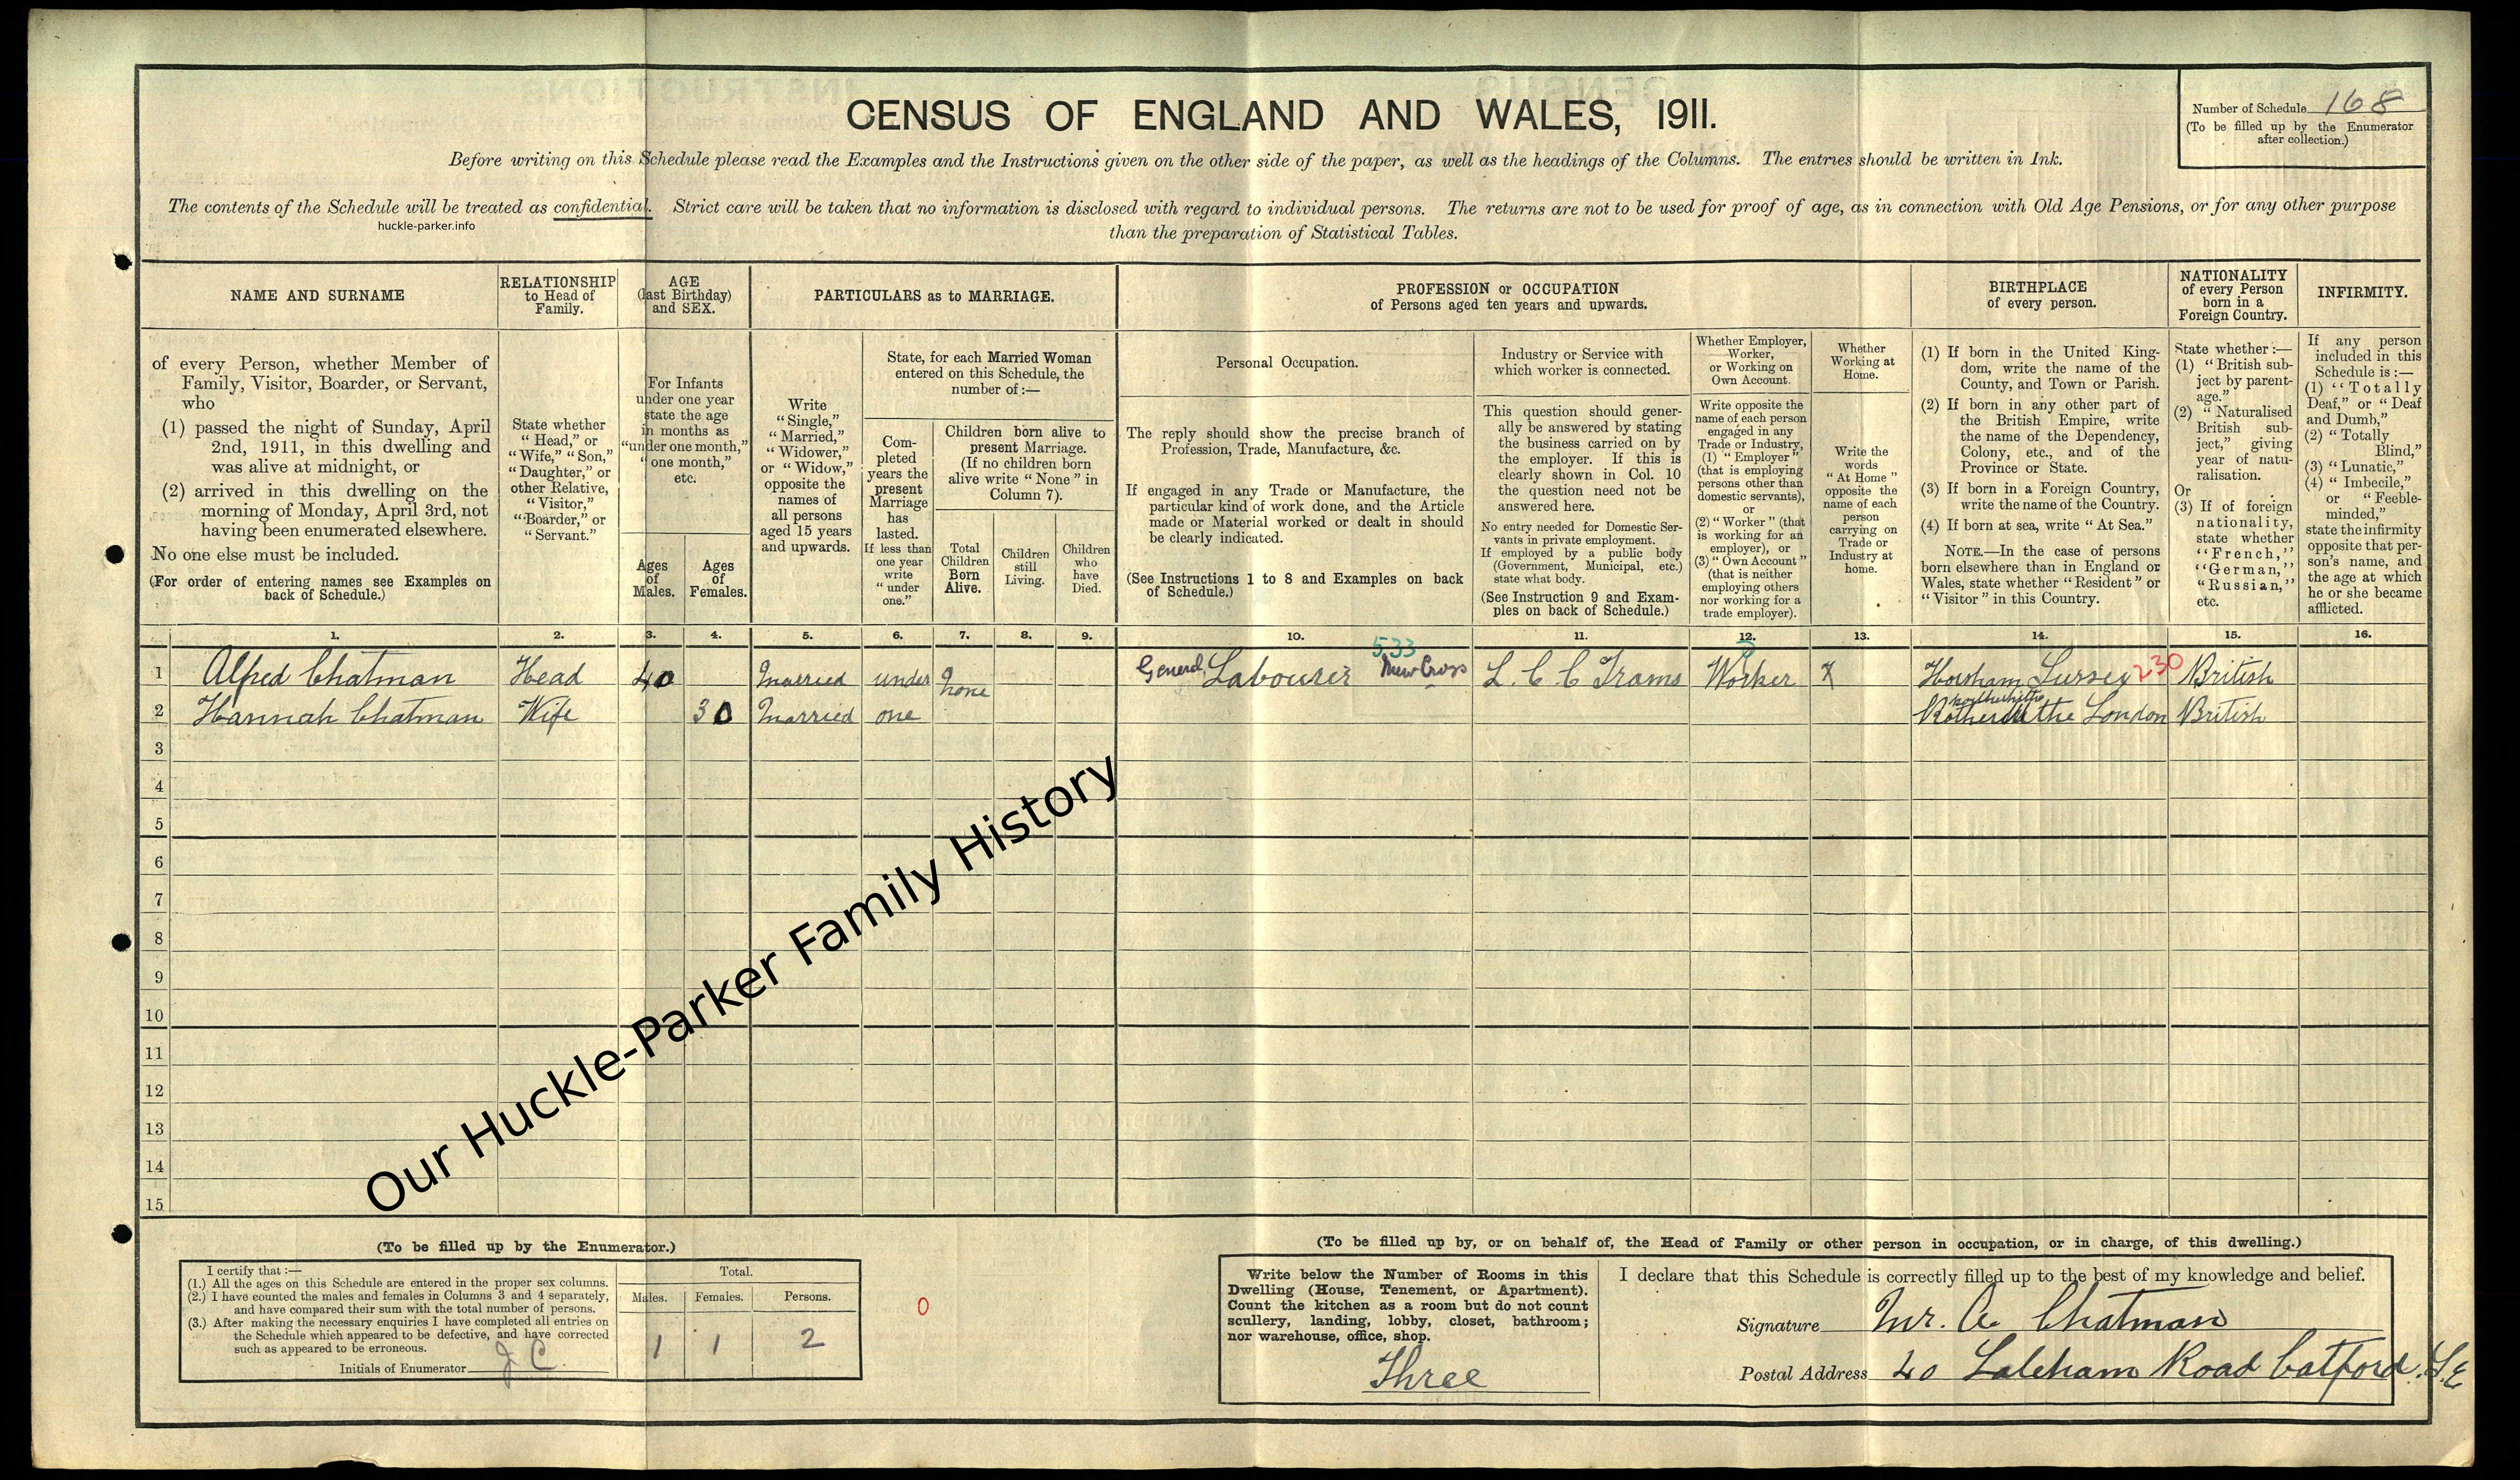 1911 census showing surname & where born